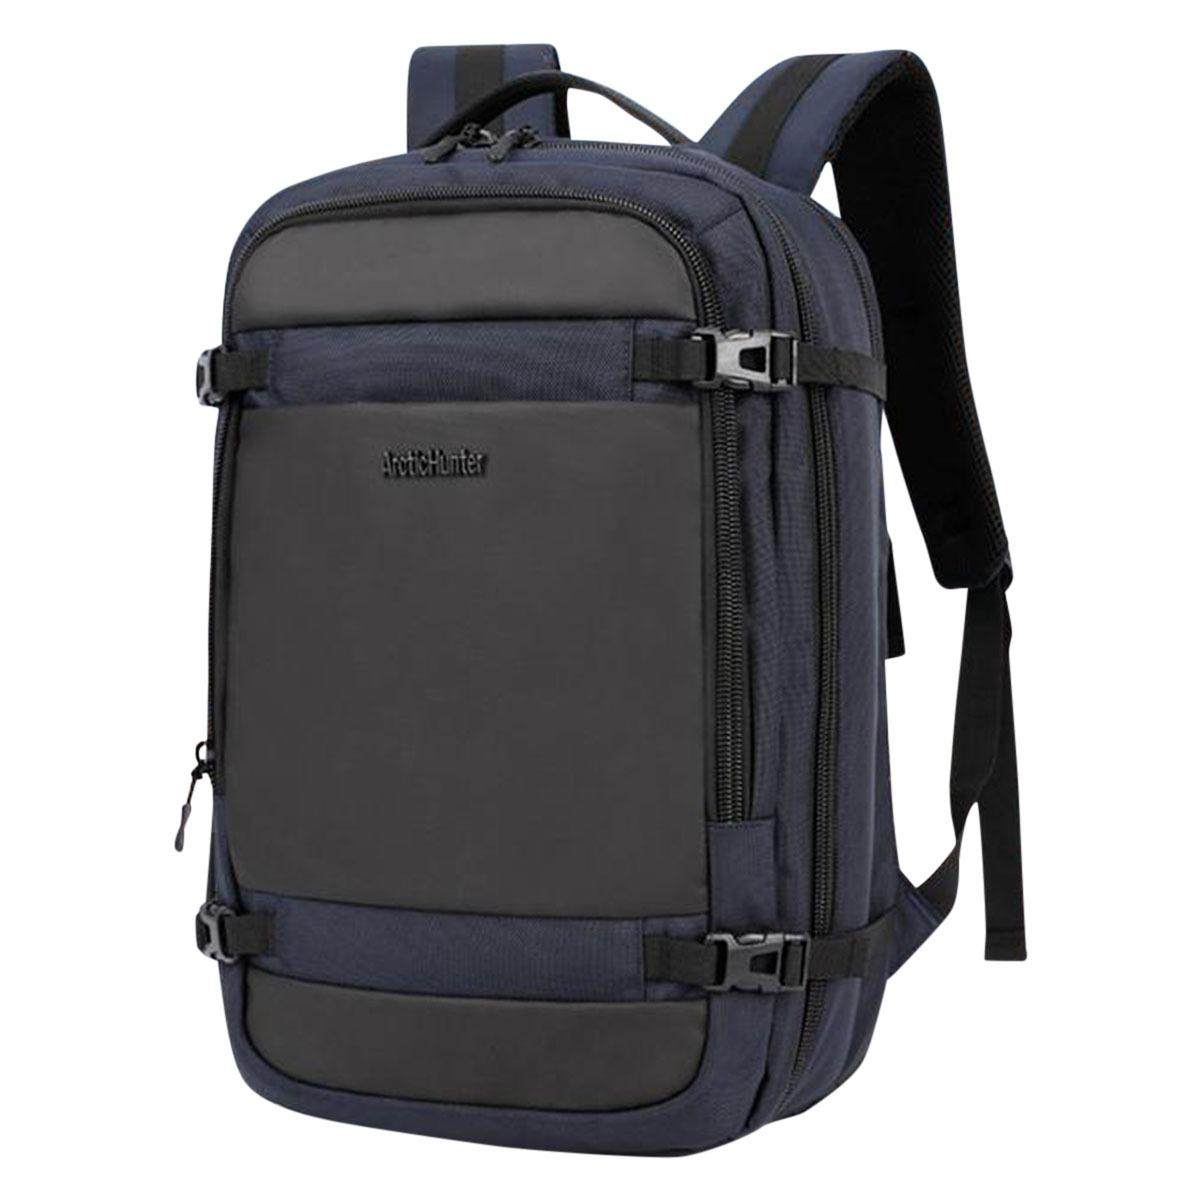 ecd588141abe ARCTIC HUNTER B00188 Large Capacity Casual Style Backpack (15.6inch Laptop  Compatible   Water Repellent